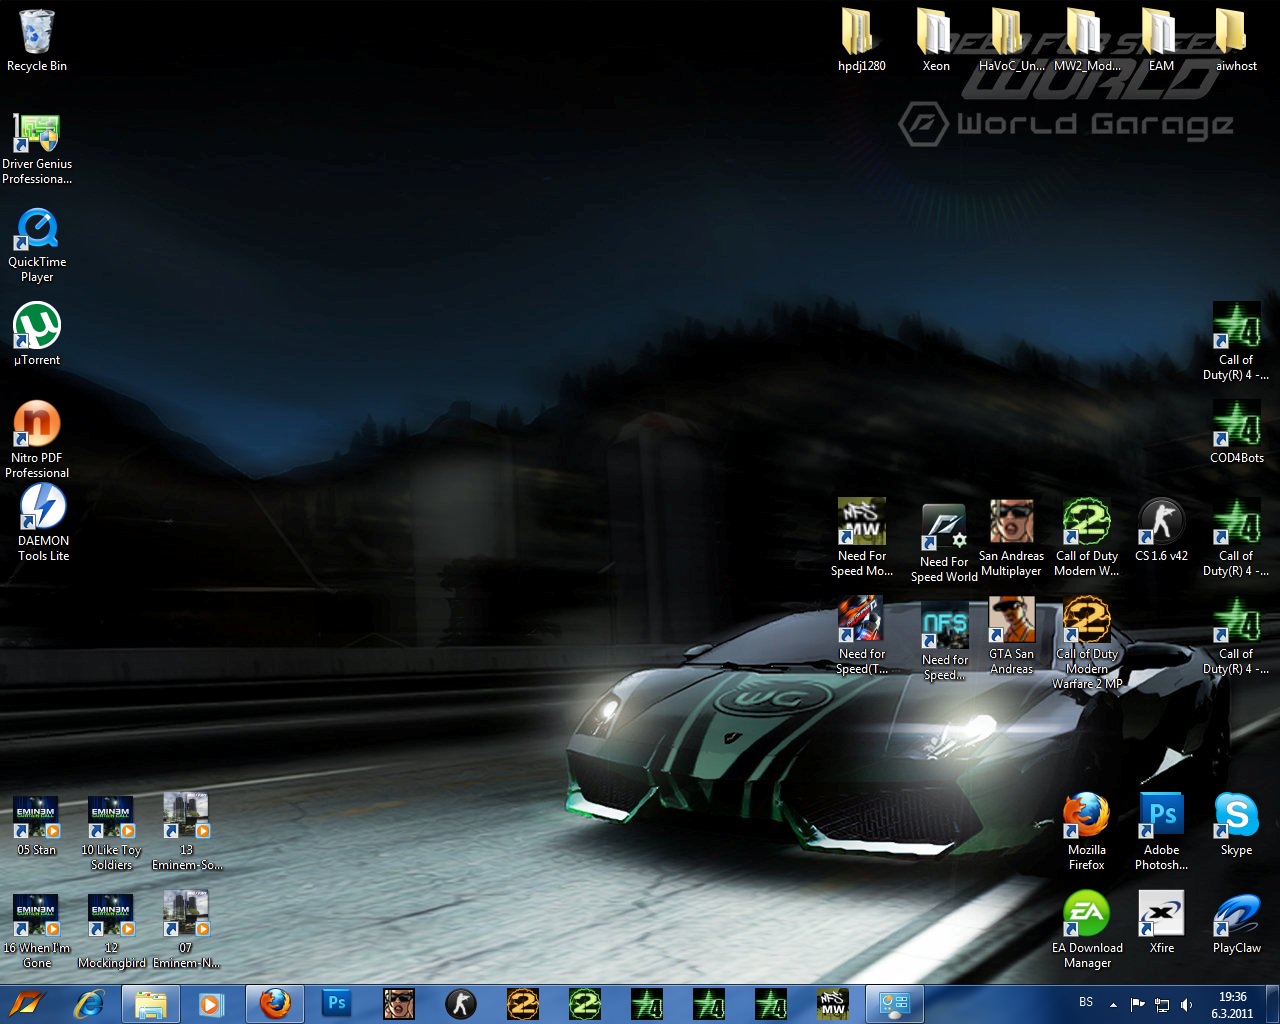 nfs world windows 7 theme by marijo 4ever d3b1uam PS3 Porn, Free Porn Videos for PS3, free ps3 porn   The hottest porn for ...